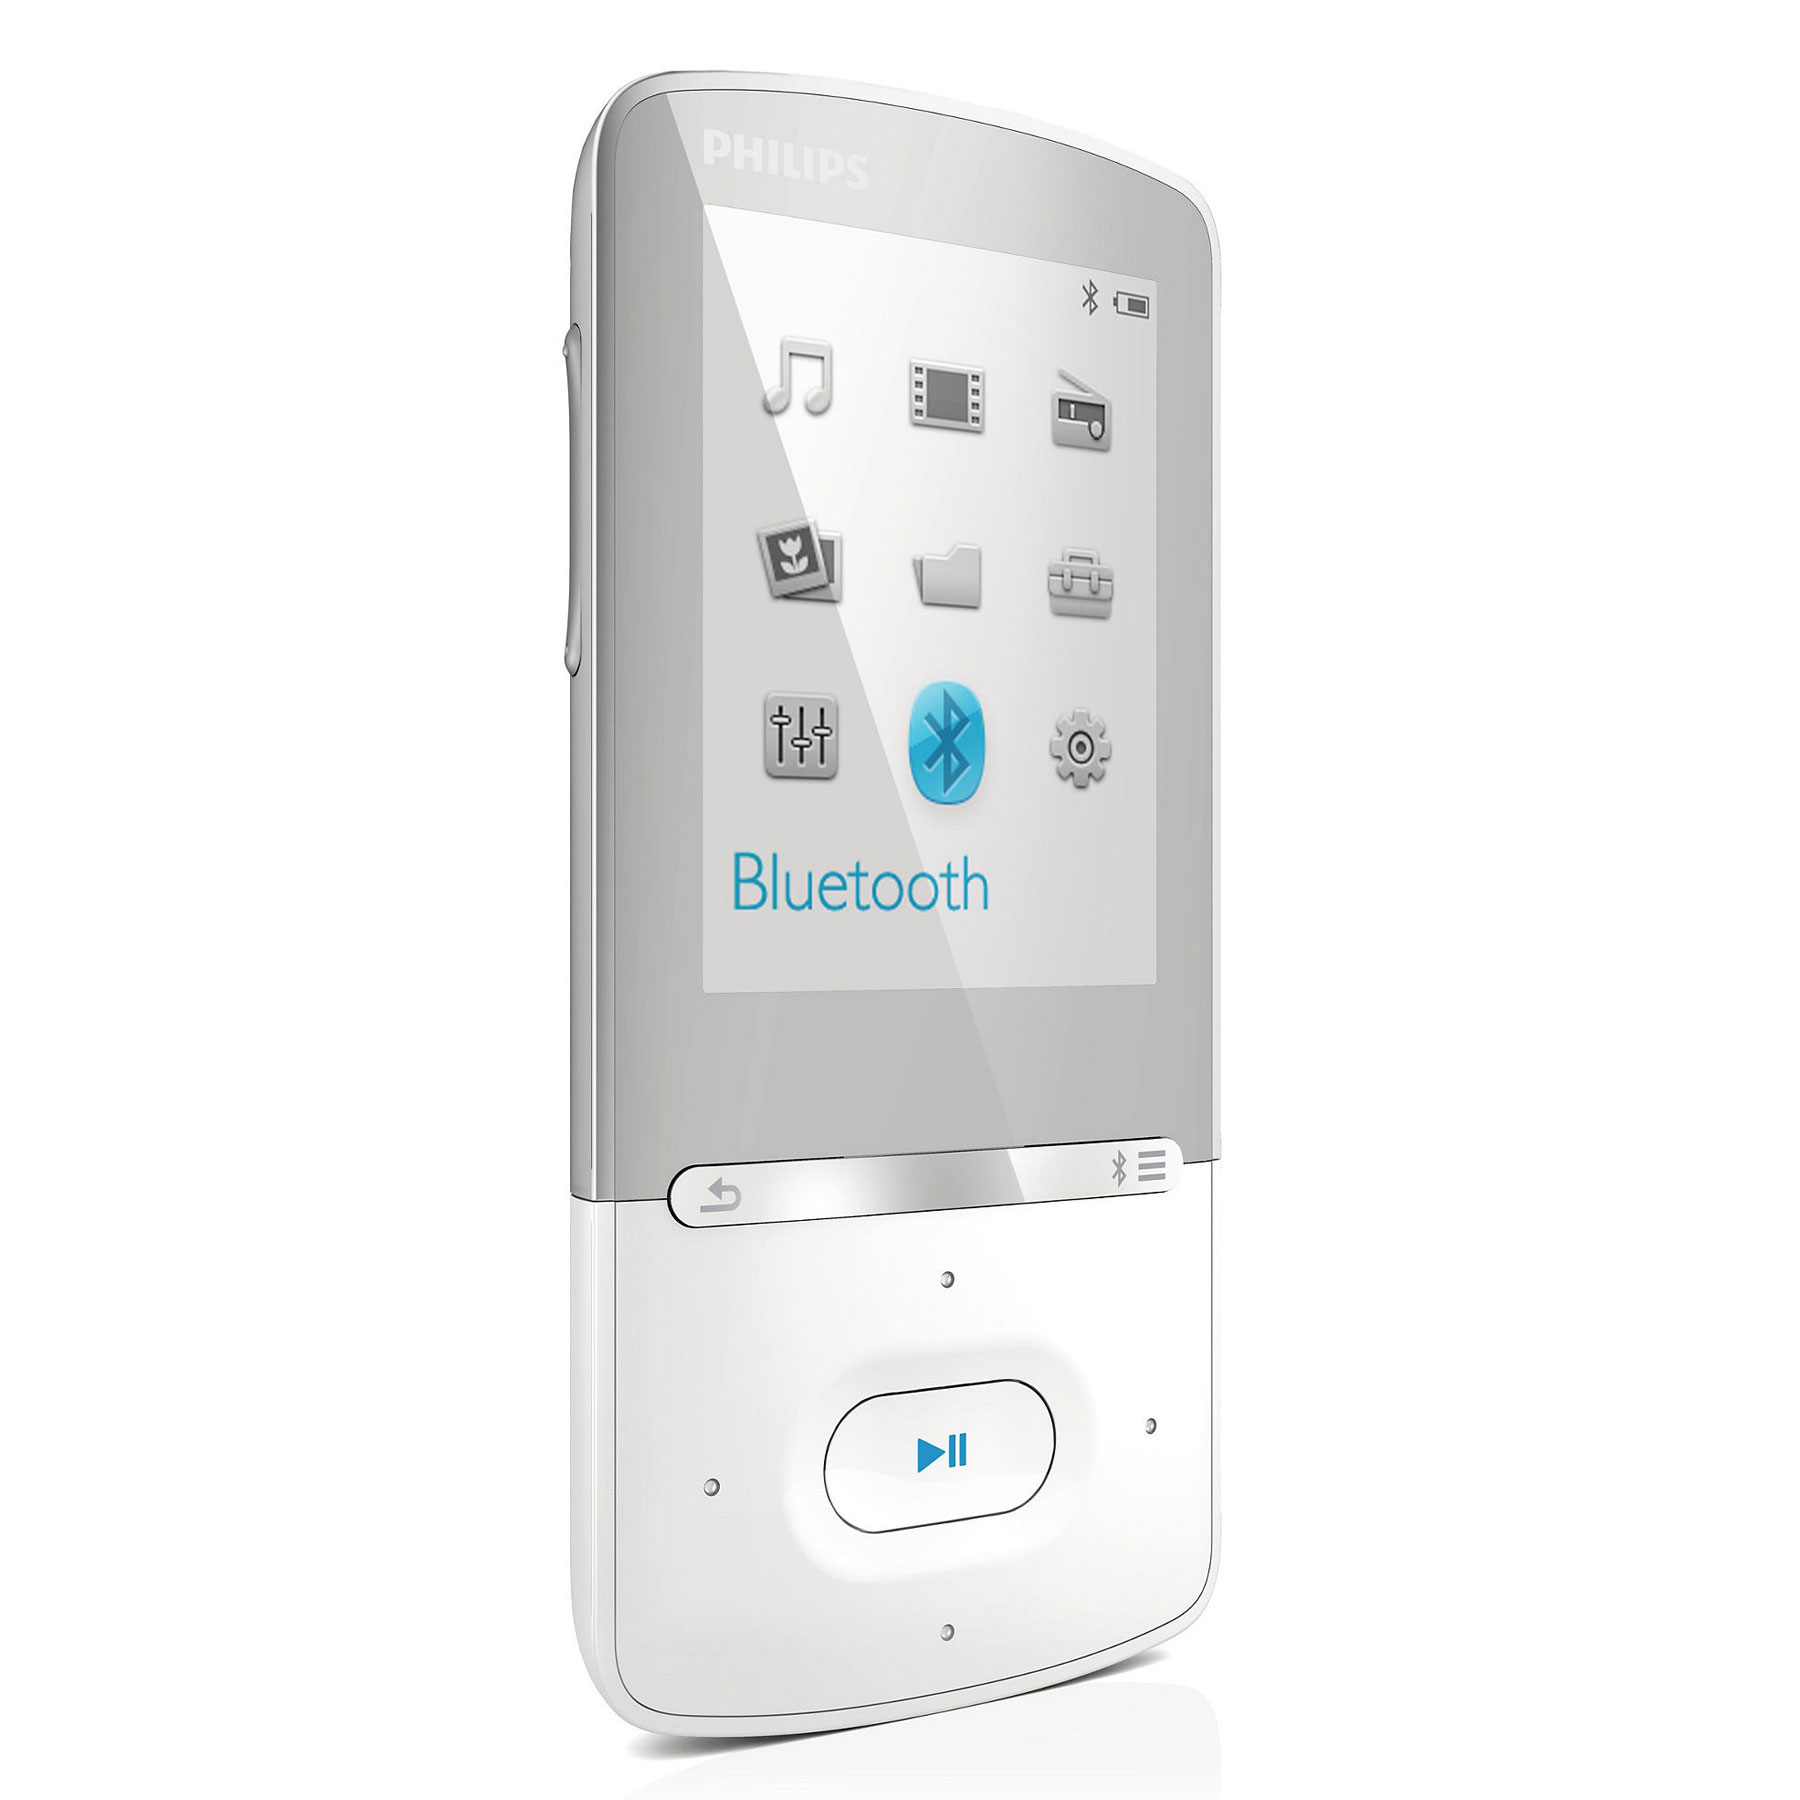 philips azure 4 go blanc lecteur mp3 ipod philips sur. Black Bedroom Furniture Sets. Home Design Ideas